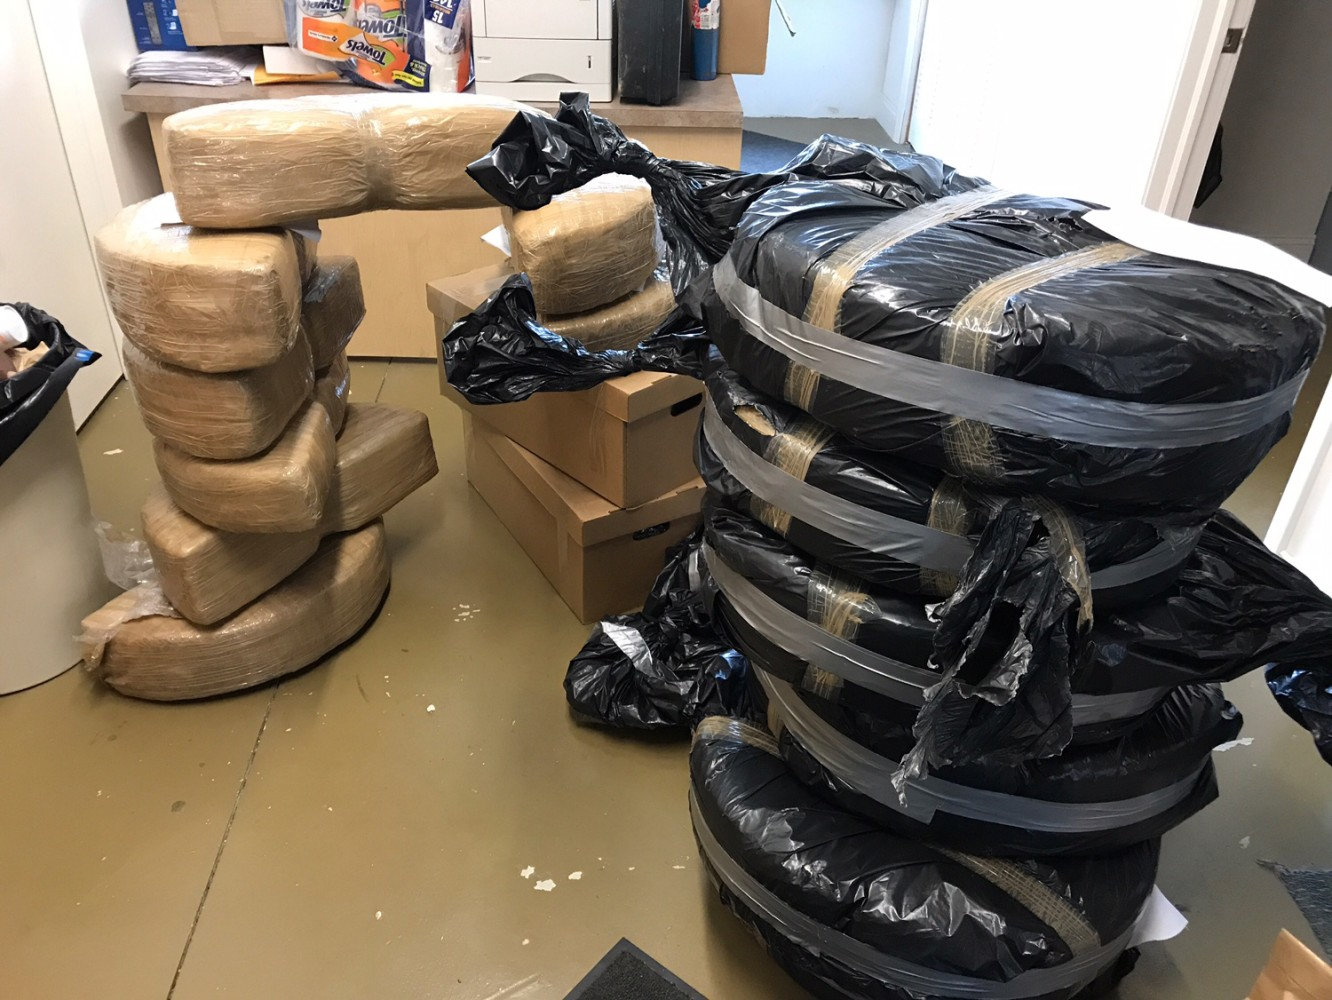 Agents seize 480 pound pot shipped from Mexico to Warren area